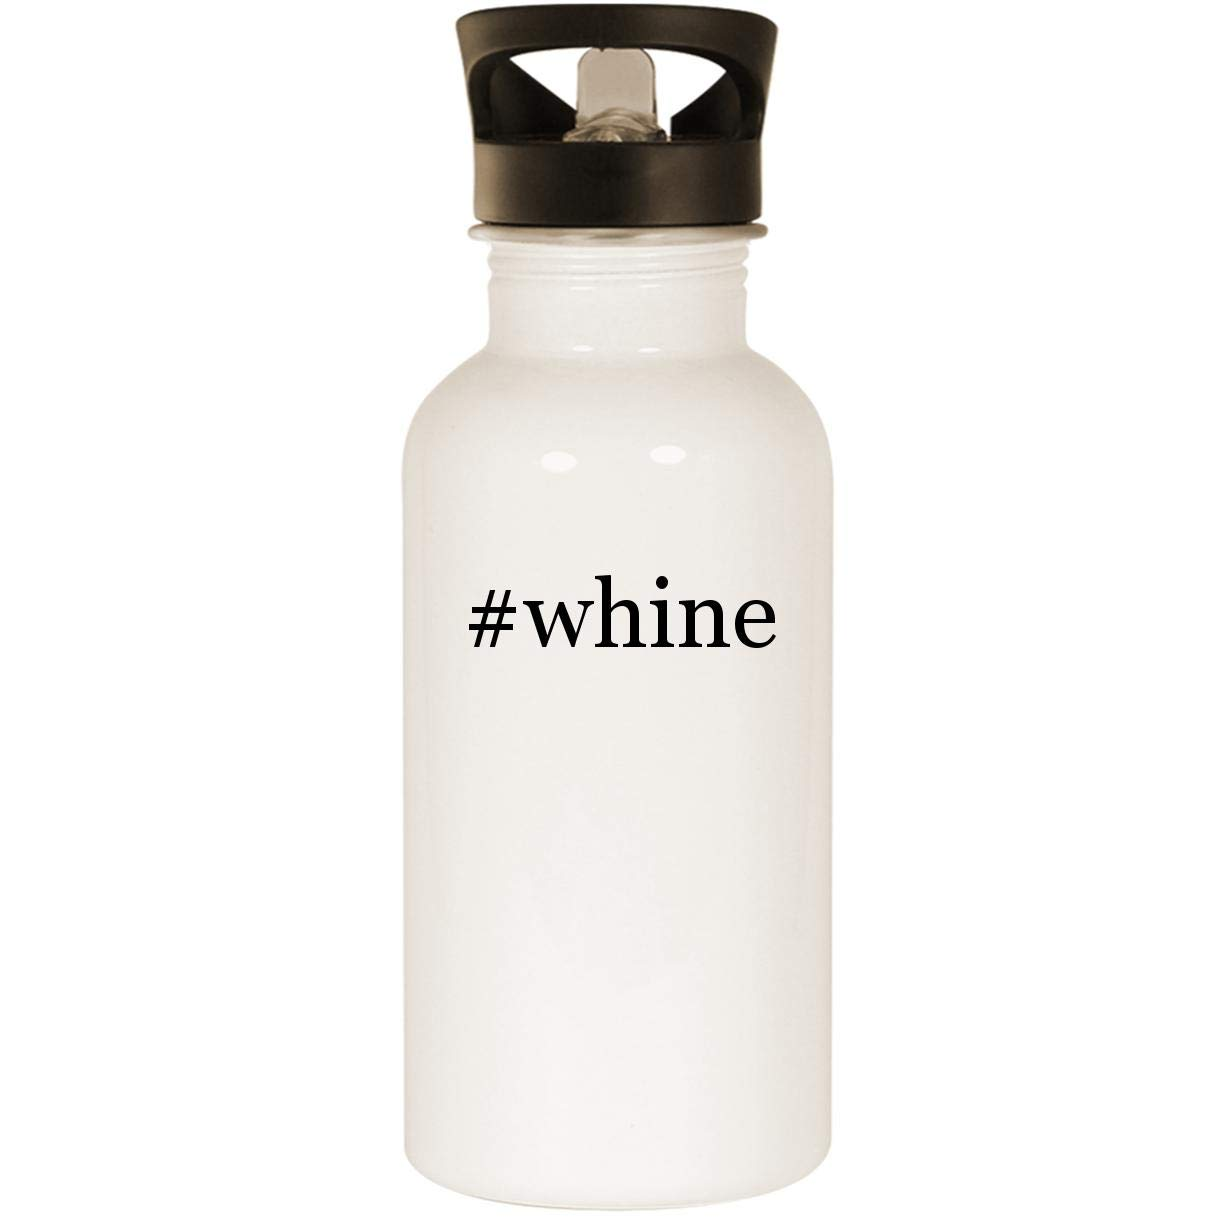 #whine - Stainless Steel 20oz Road Ready Water Bottle, White